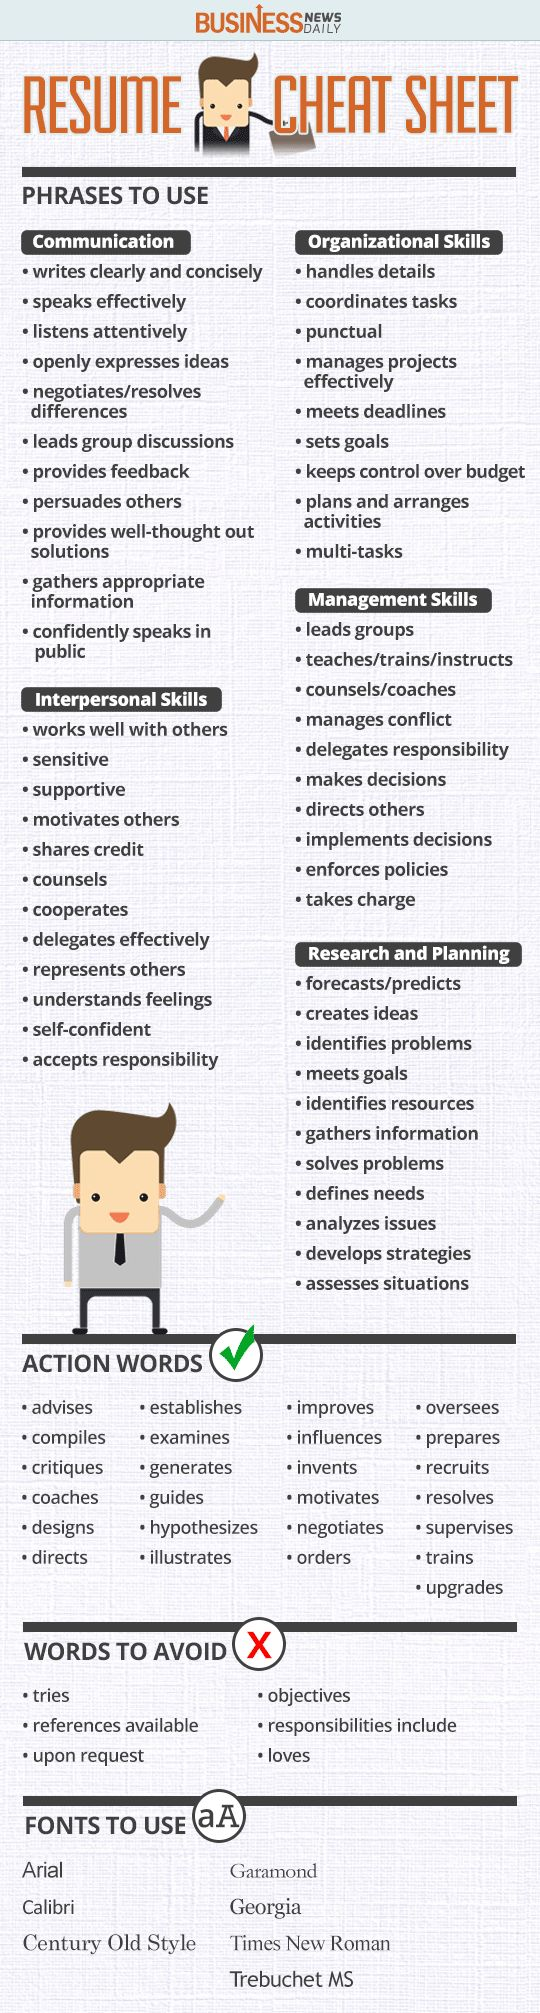 Opposenewapstandardsus  Splendid  Ideas About Resume On Pinterest  Cv Format Resume  With Extraordinary Resume Cheat Sheet Infographic Andrews Almost Done With A Complete Unit On Employment Which With Cool Search Resumes On Indeed Also Head Cashier Resume In Addition Entry Level Resume Template Word And What Not To Do On A Resume As Well As Tsa Resume Additionally How To Send Resume To Email From Pinterestcom With Opposenewapstandardsus  Extraordinary  Ideas About Resume On Pinterest  Cv Format Resume  With Cool Resume Cheat Sheet Infographic Andrews Almost Done With A Complete Unit On Employment Which And Splendid Search Resumes On Indeed Also Head Cashier Resume In Addition Entry Level Resume Template Word From Pinterestcom